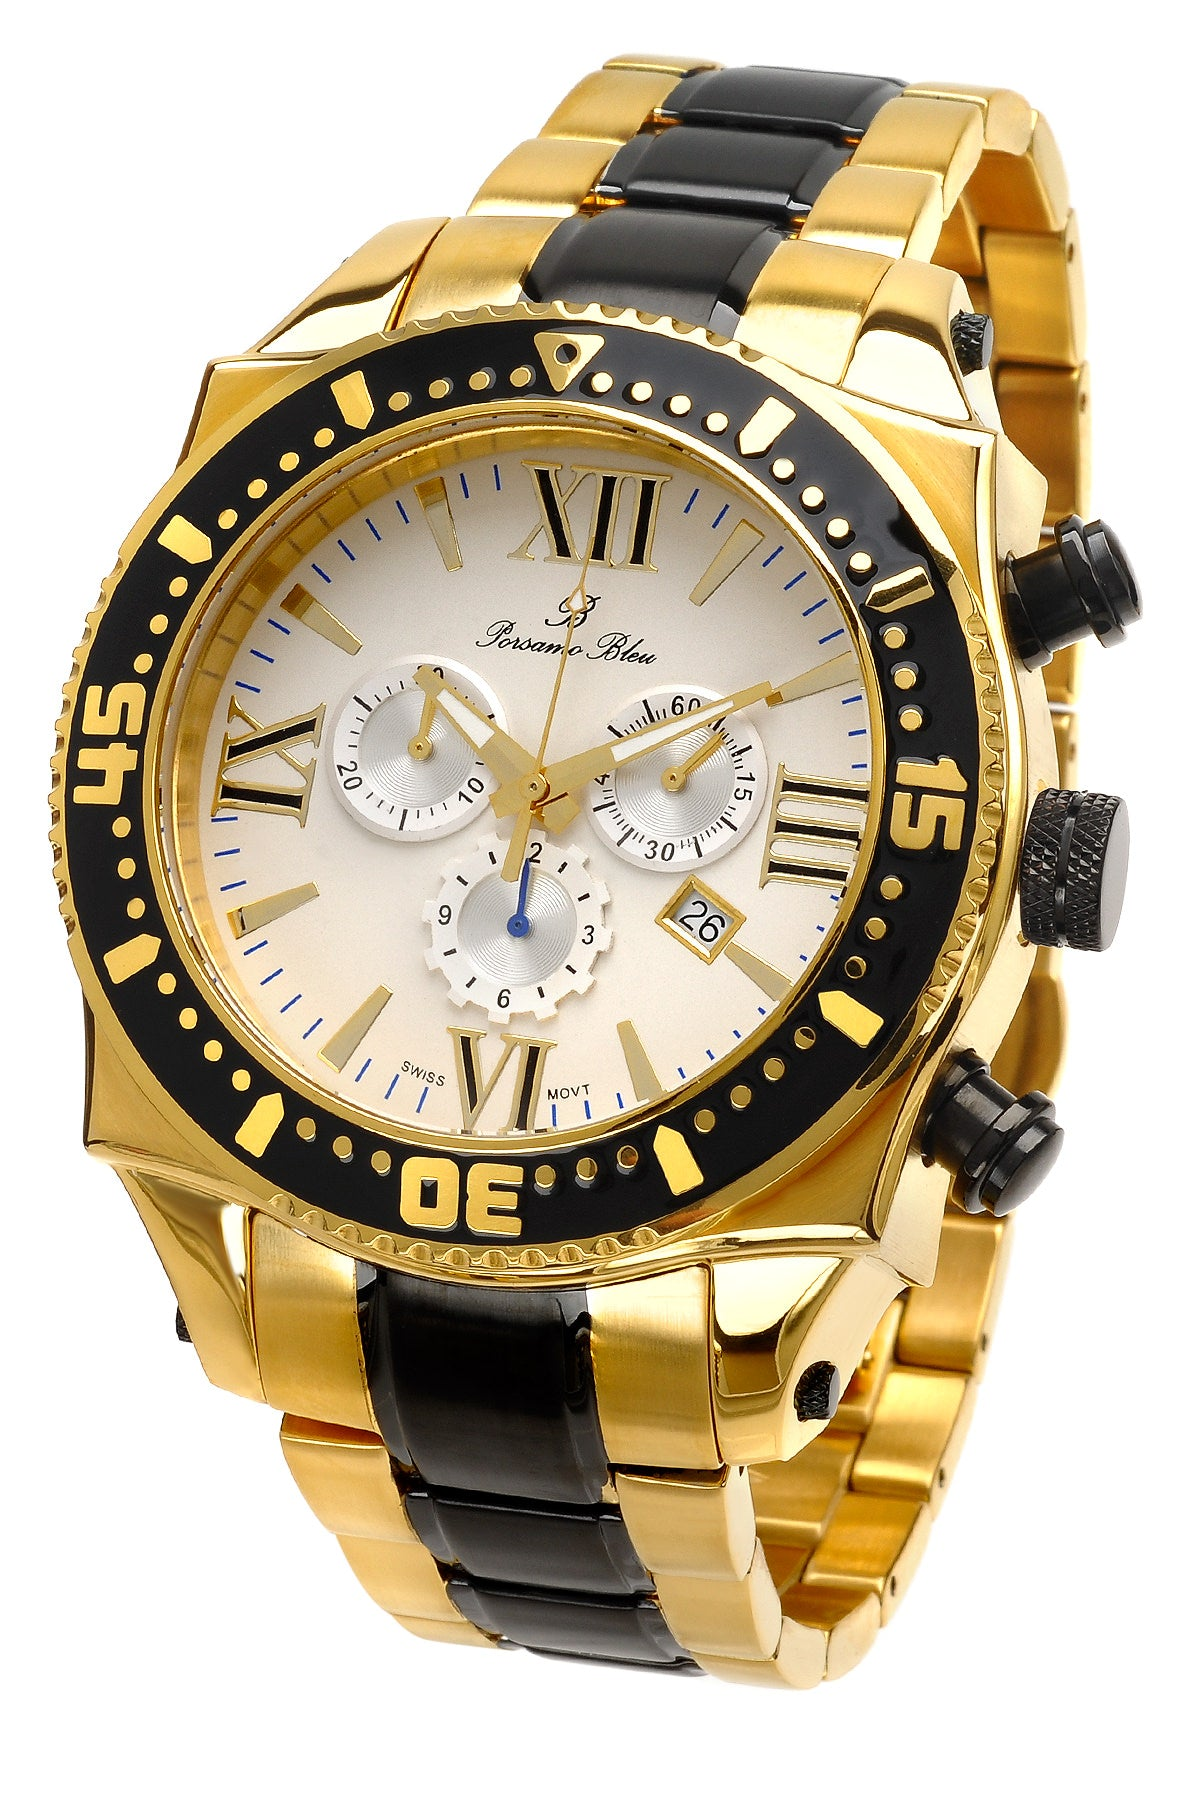 Porsamo Bleu Milan G luxury chronograph men's stainless steel watch, gold, black 072CMIS